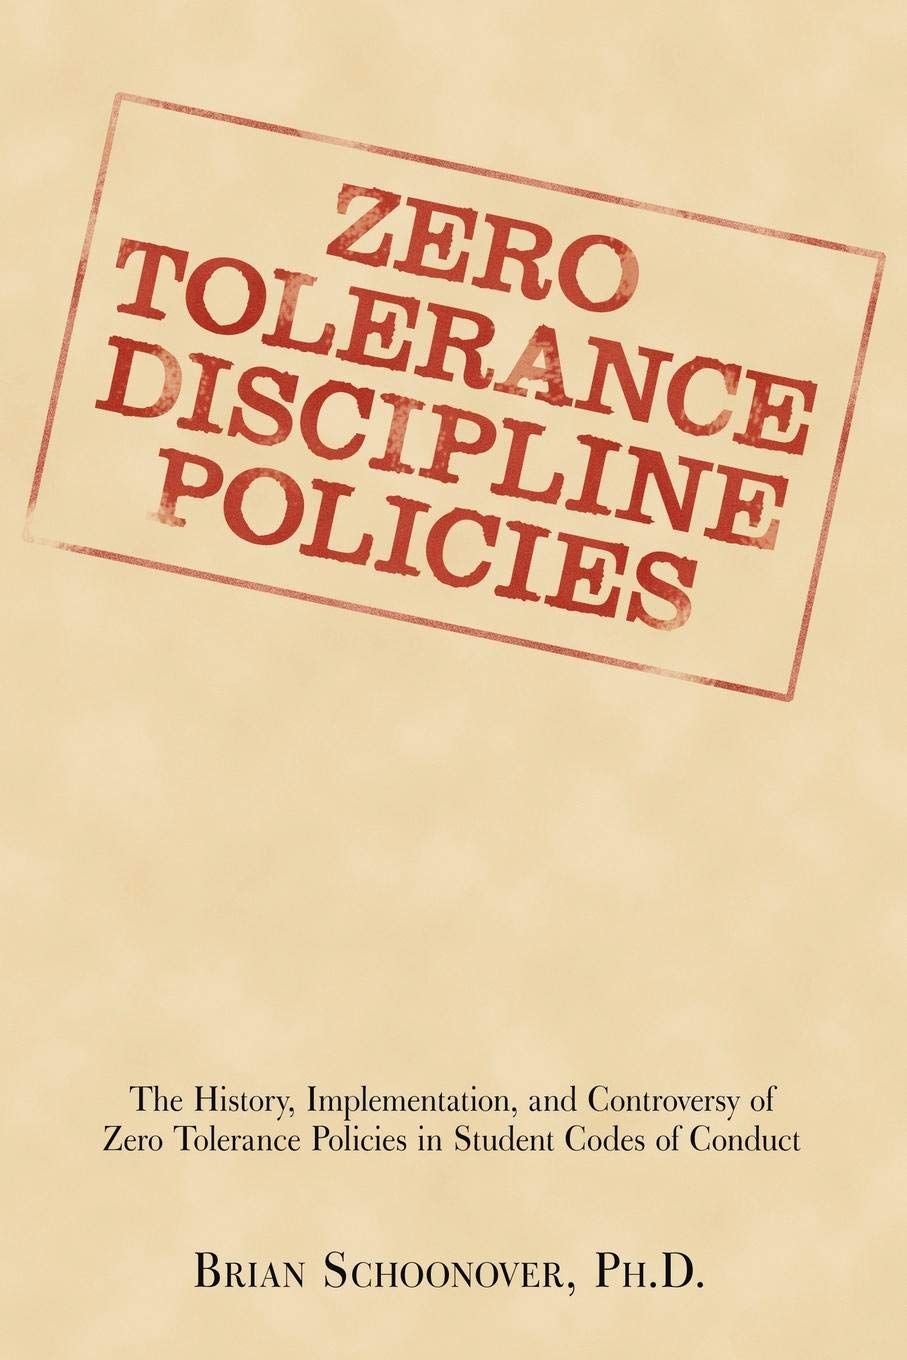 Zero Tolerance Discipline Policies  The History Implementation And Controversy Of Zero Tolerance Policies In Student Codes Of Conduct